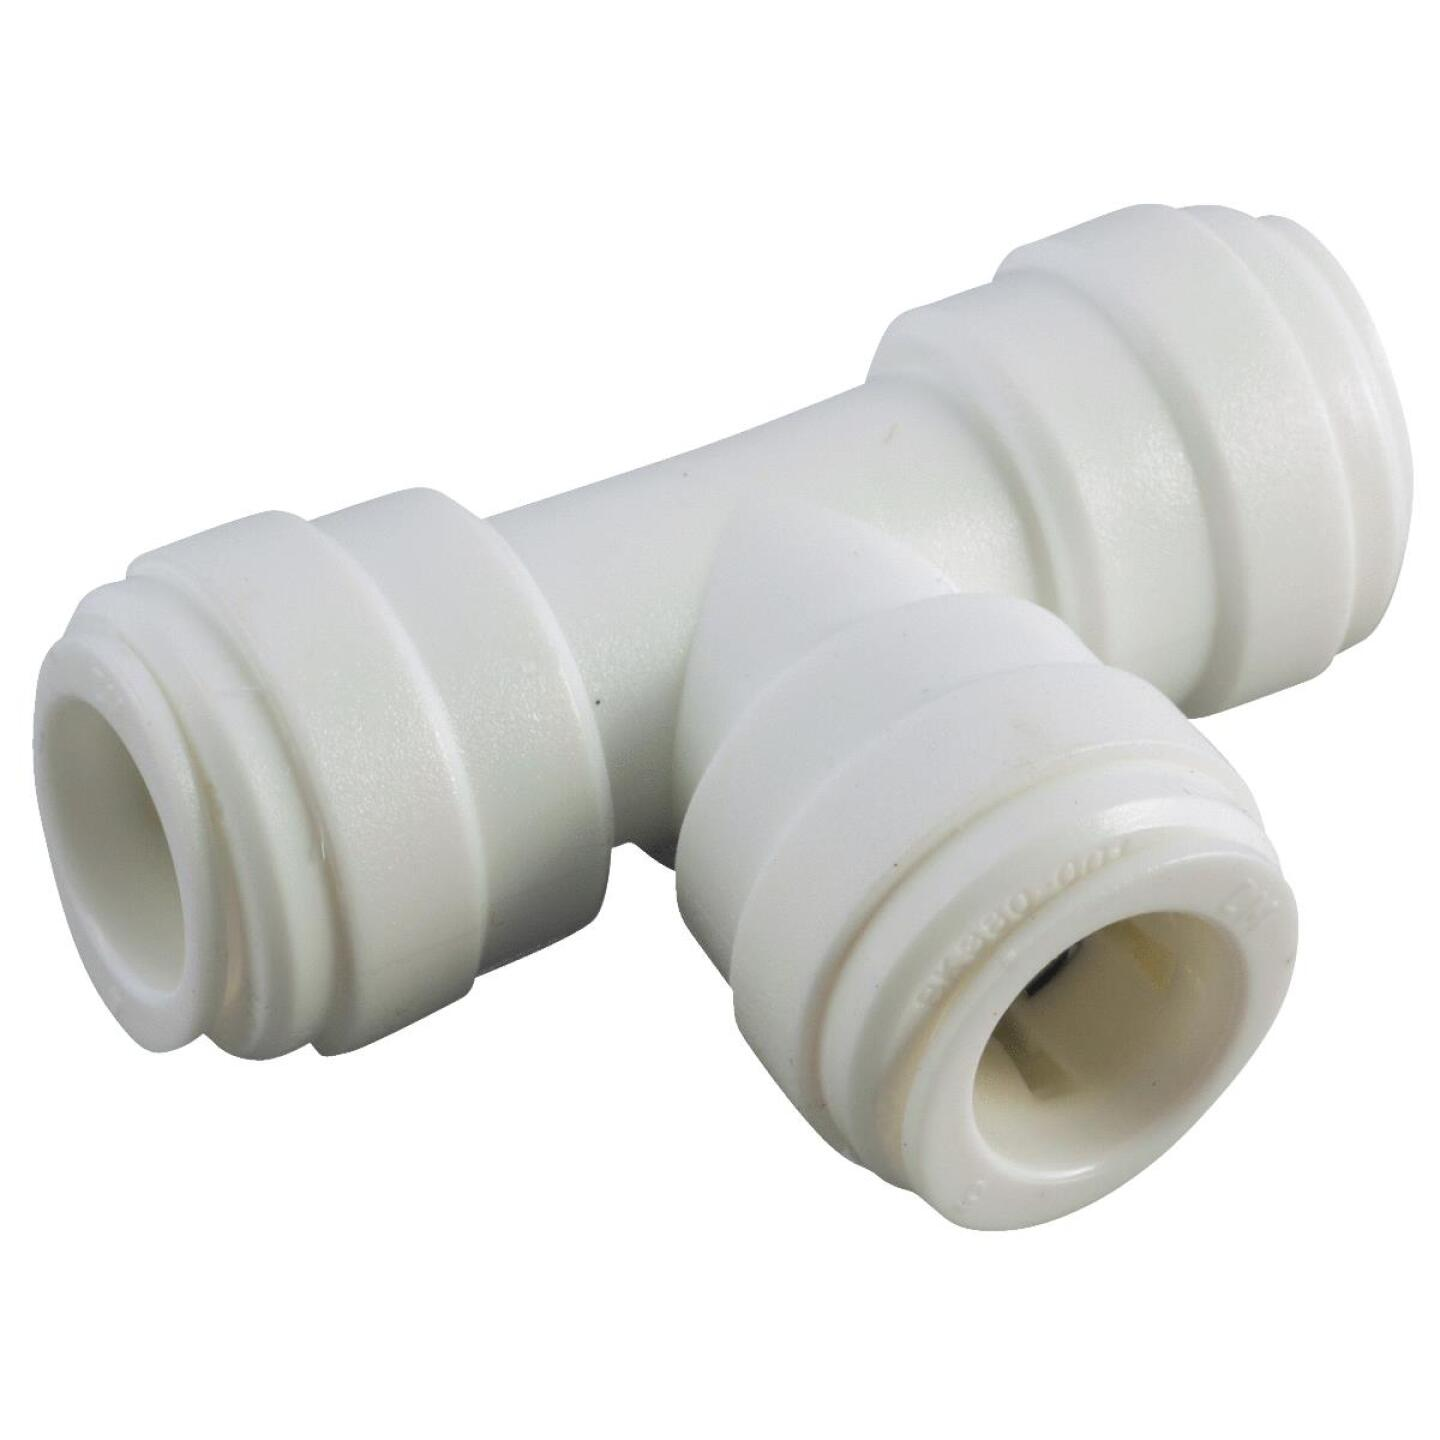 Anderson Metals 5/8 In. x 5/8 In. x 5/8 In. Push-In Plastic Tee Image 1